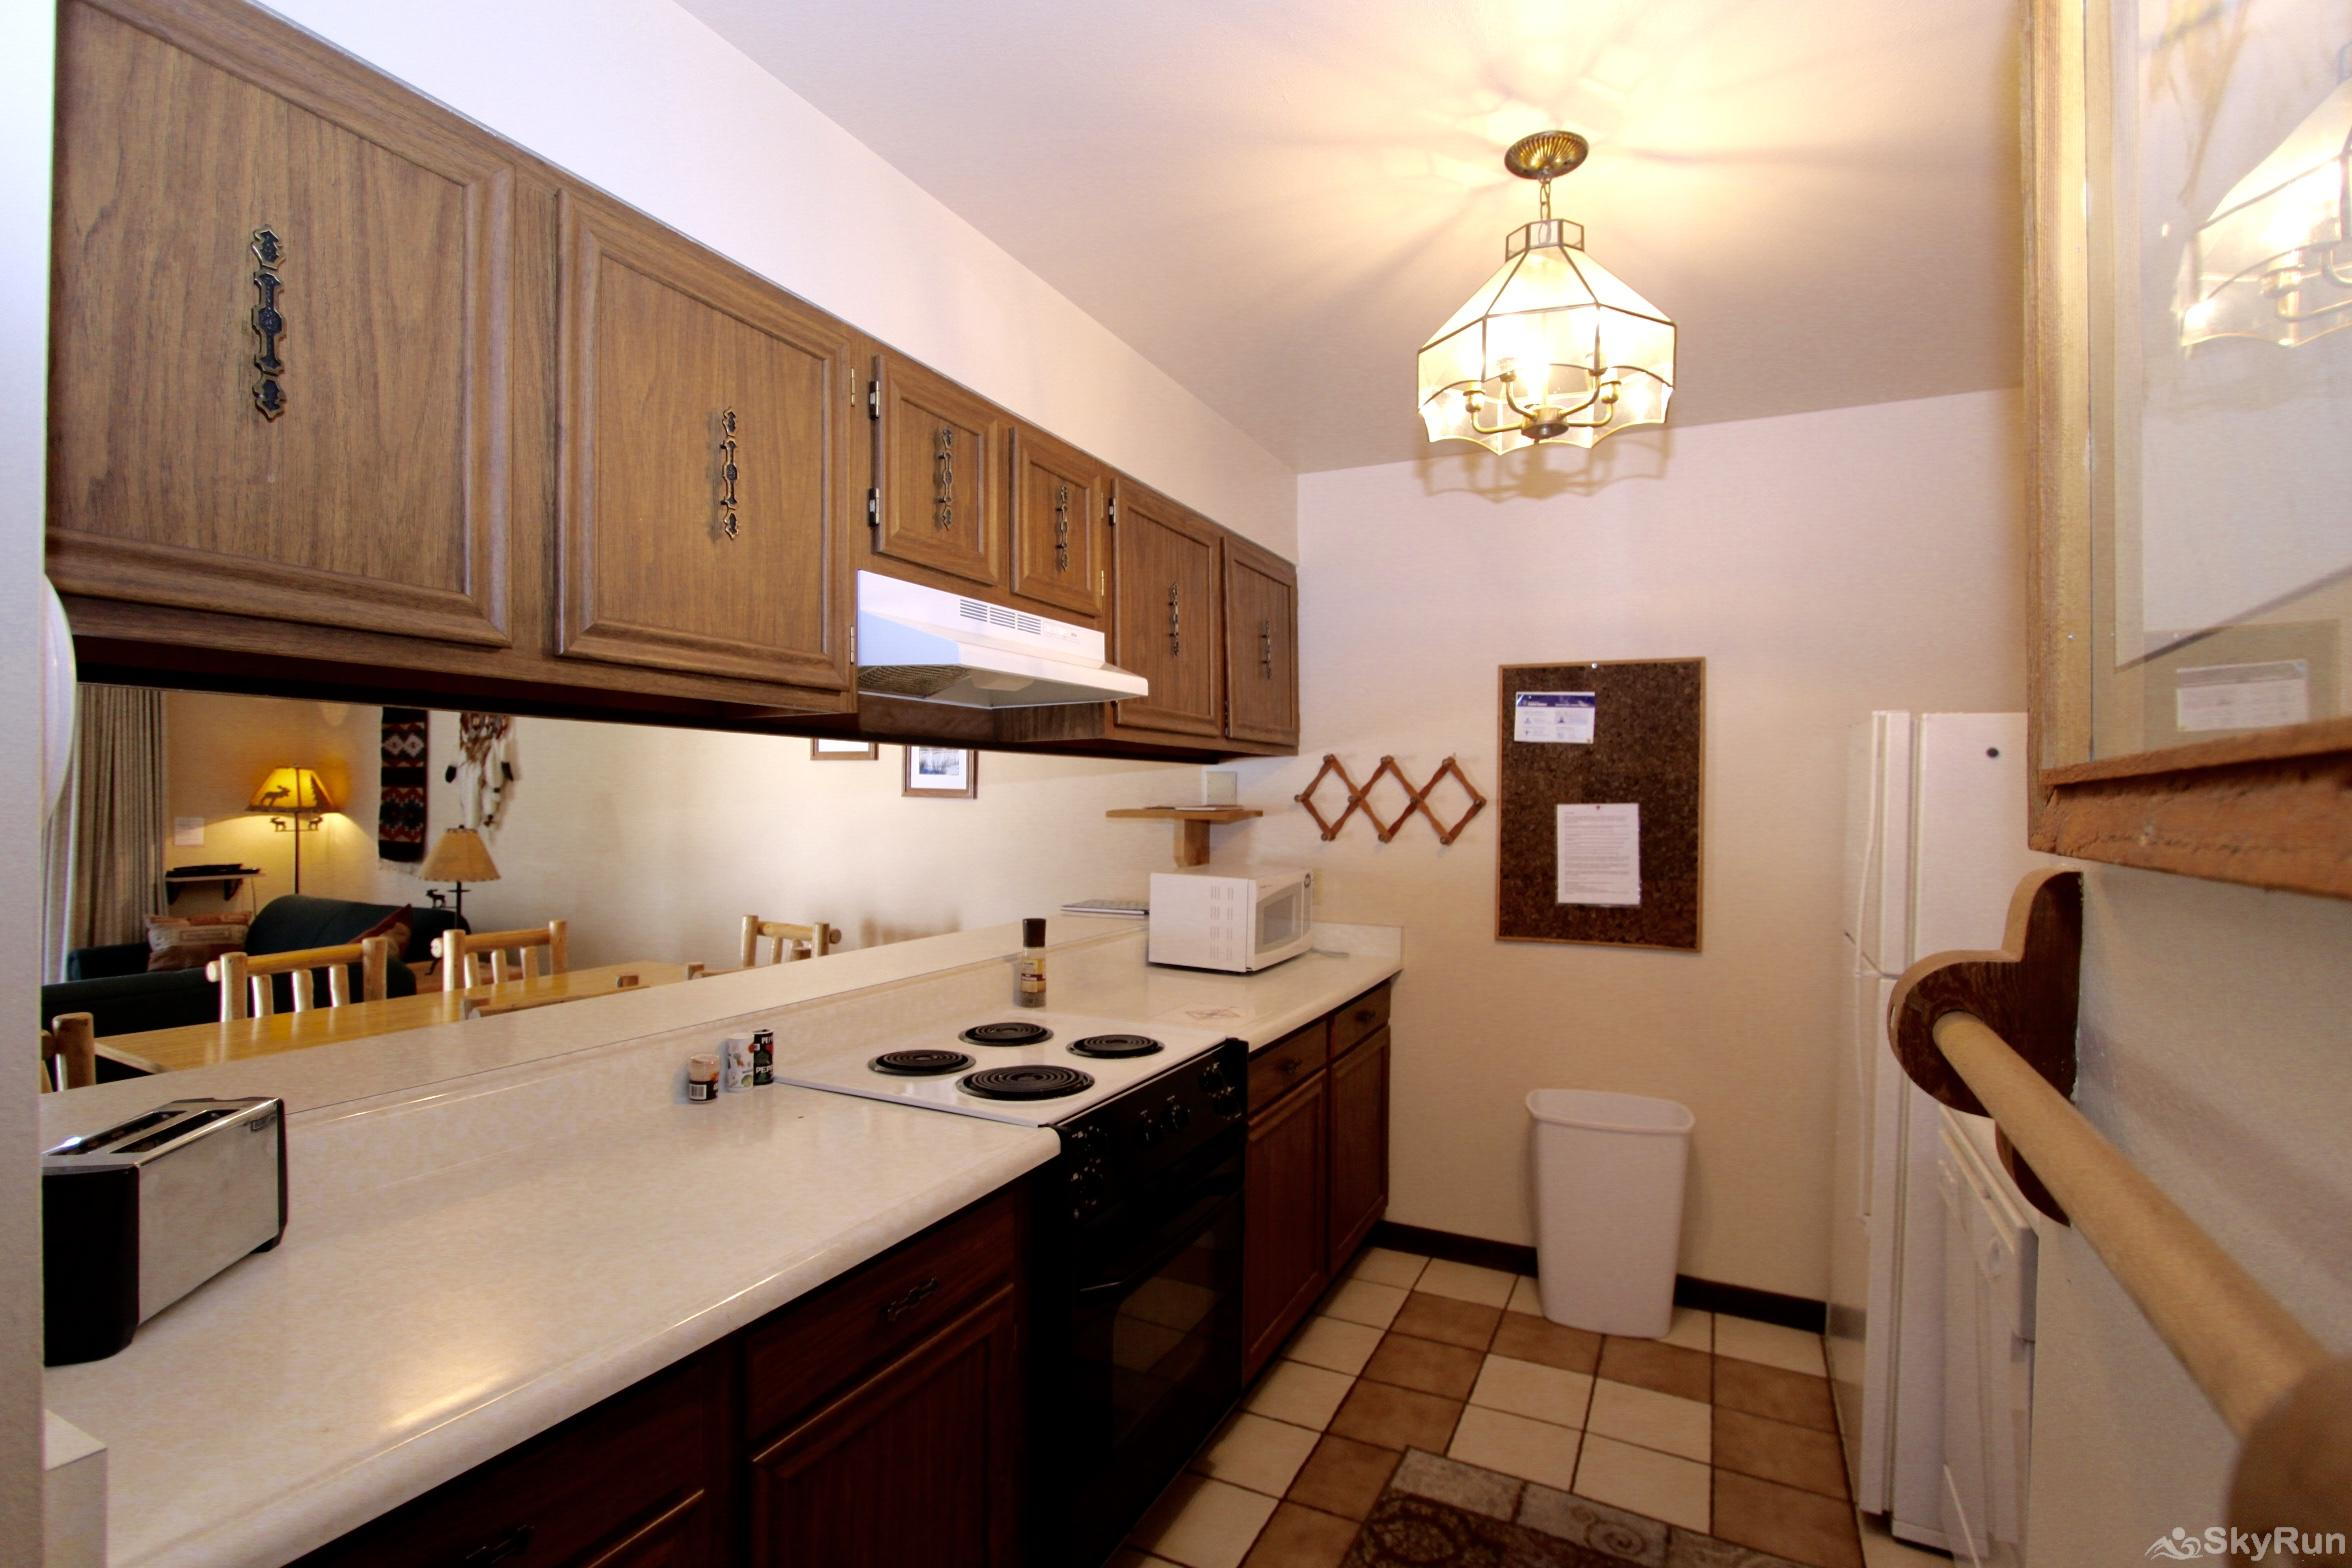 Meadow Ridge Court 5 Unit 3 Galley Kitchen straight from the 90s!